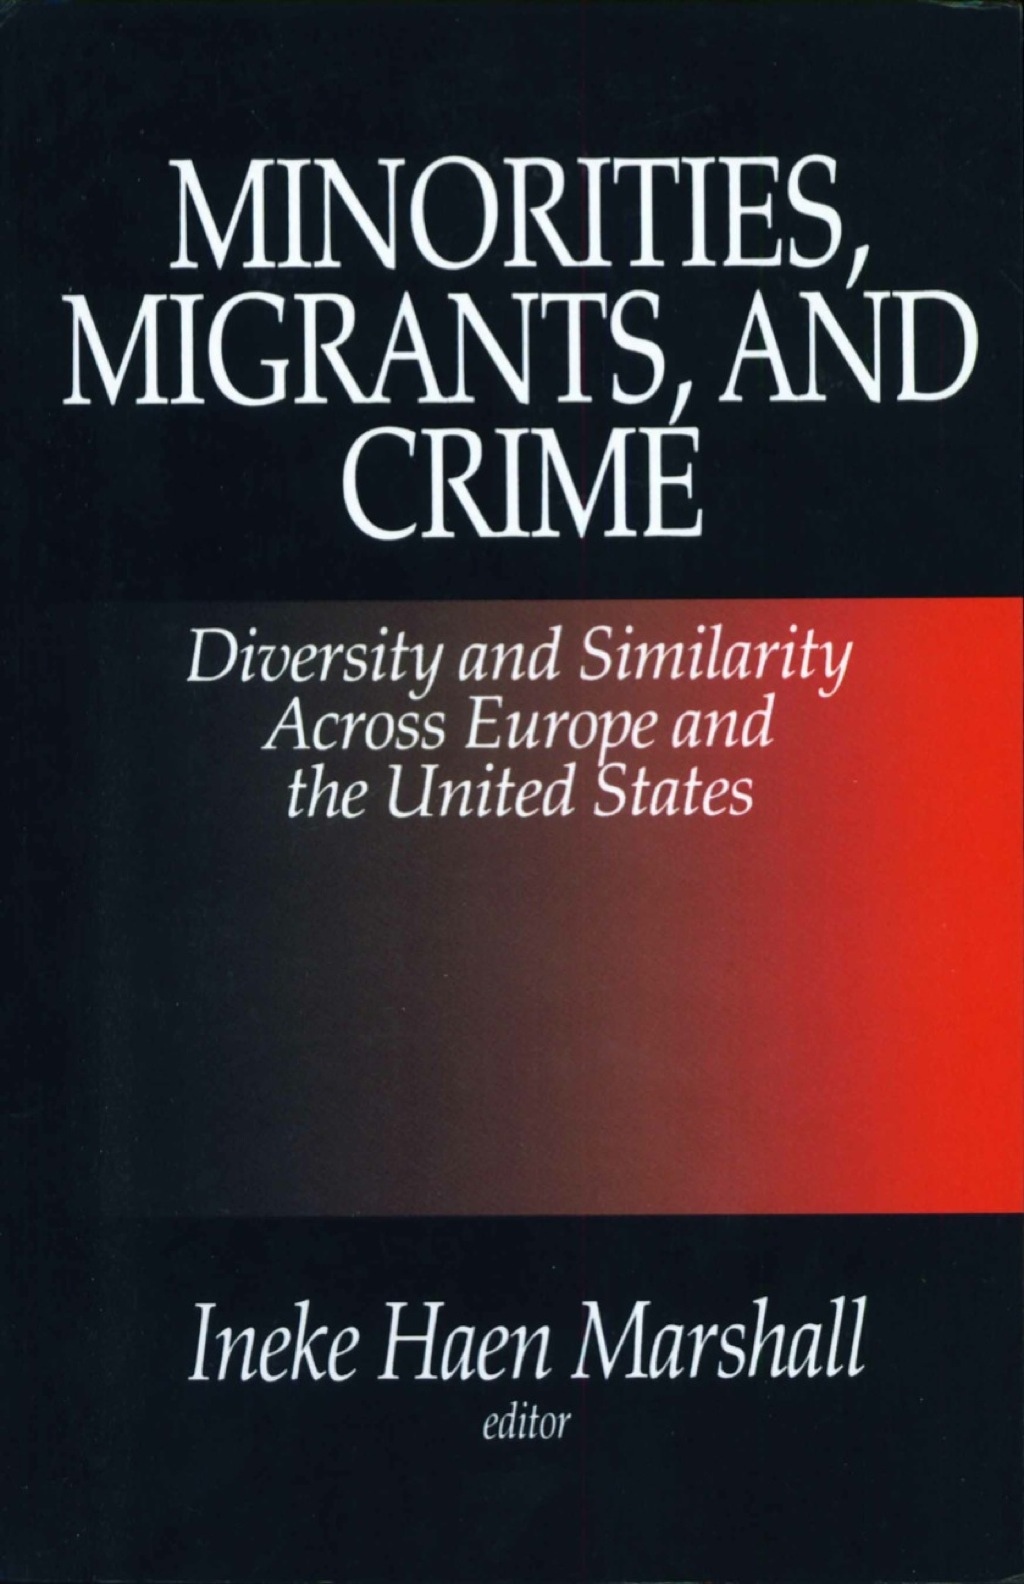 Minorities, Migrants, and Crime: Diversity and Similarity Across Europe and the United States (ebook) eBooks